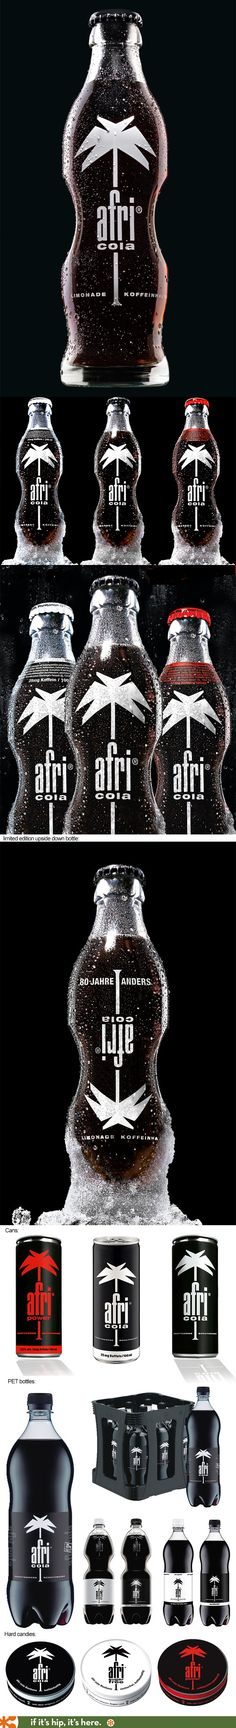 Afri Cola's ergonomic bottles, plastic bottles, bonbons and special limited edition upside down bottle design.